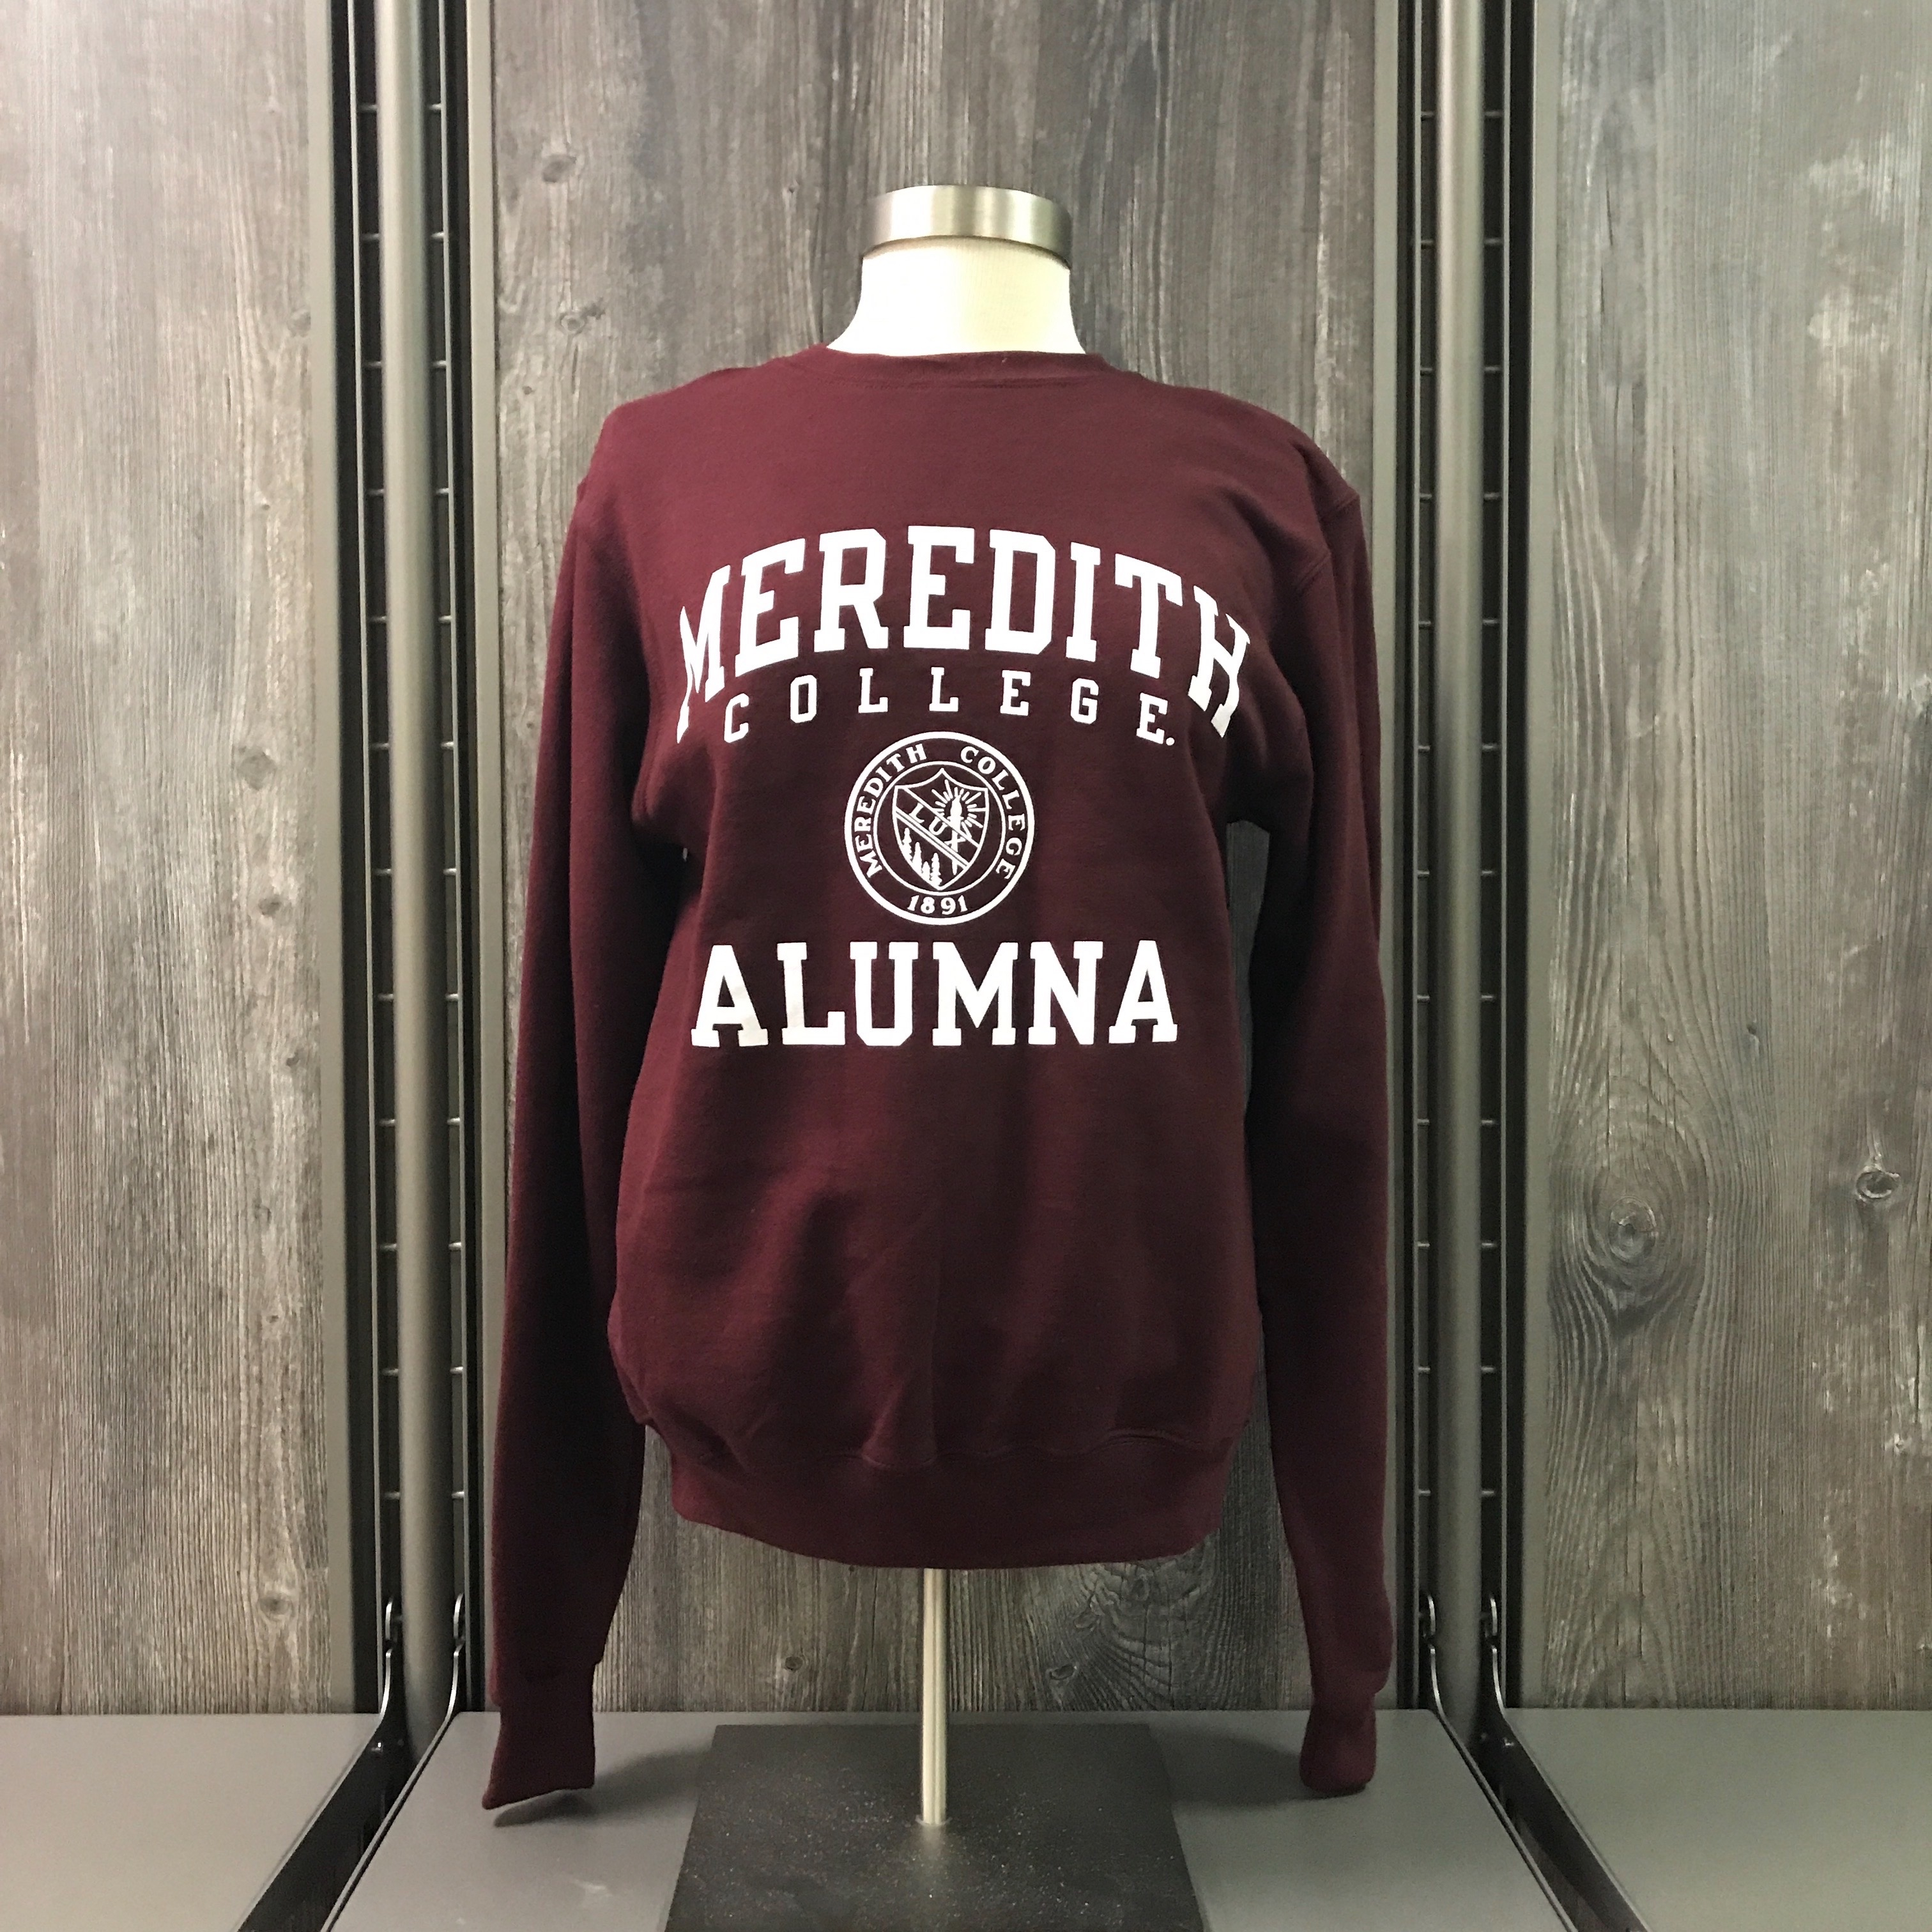 Image for the Crew Maroon Alumna Champion product